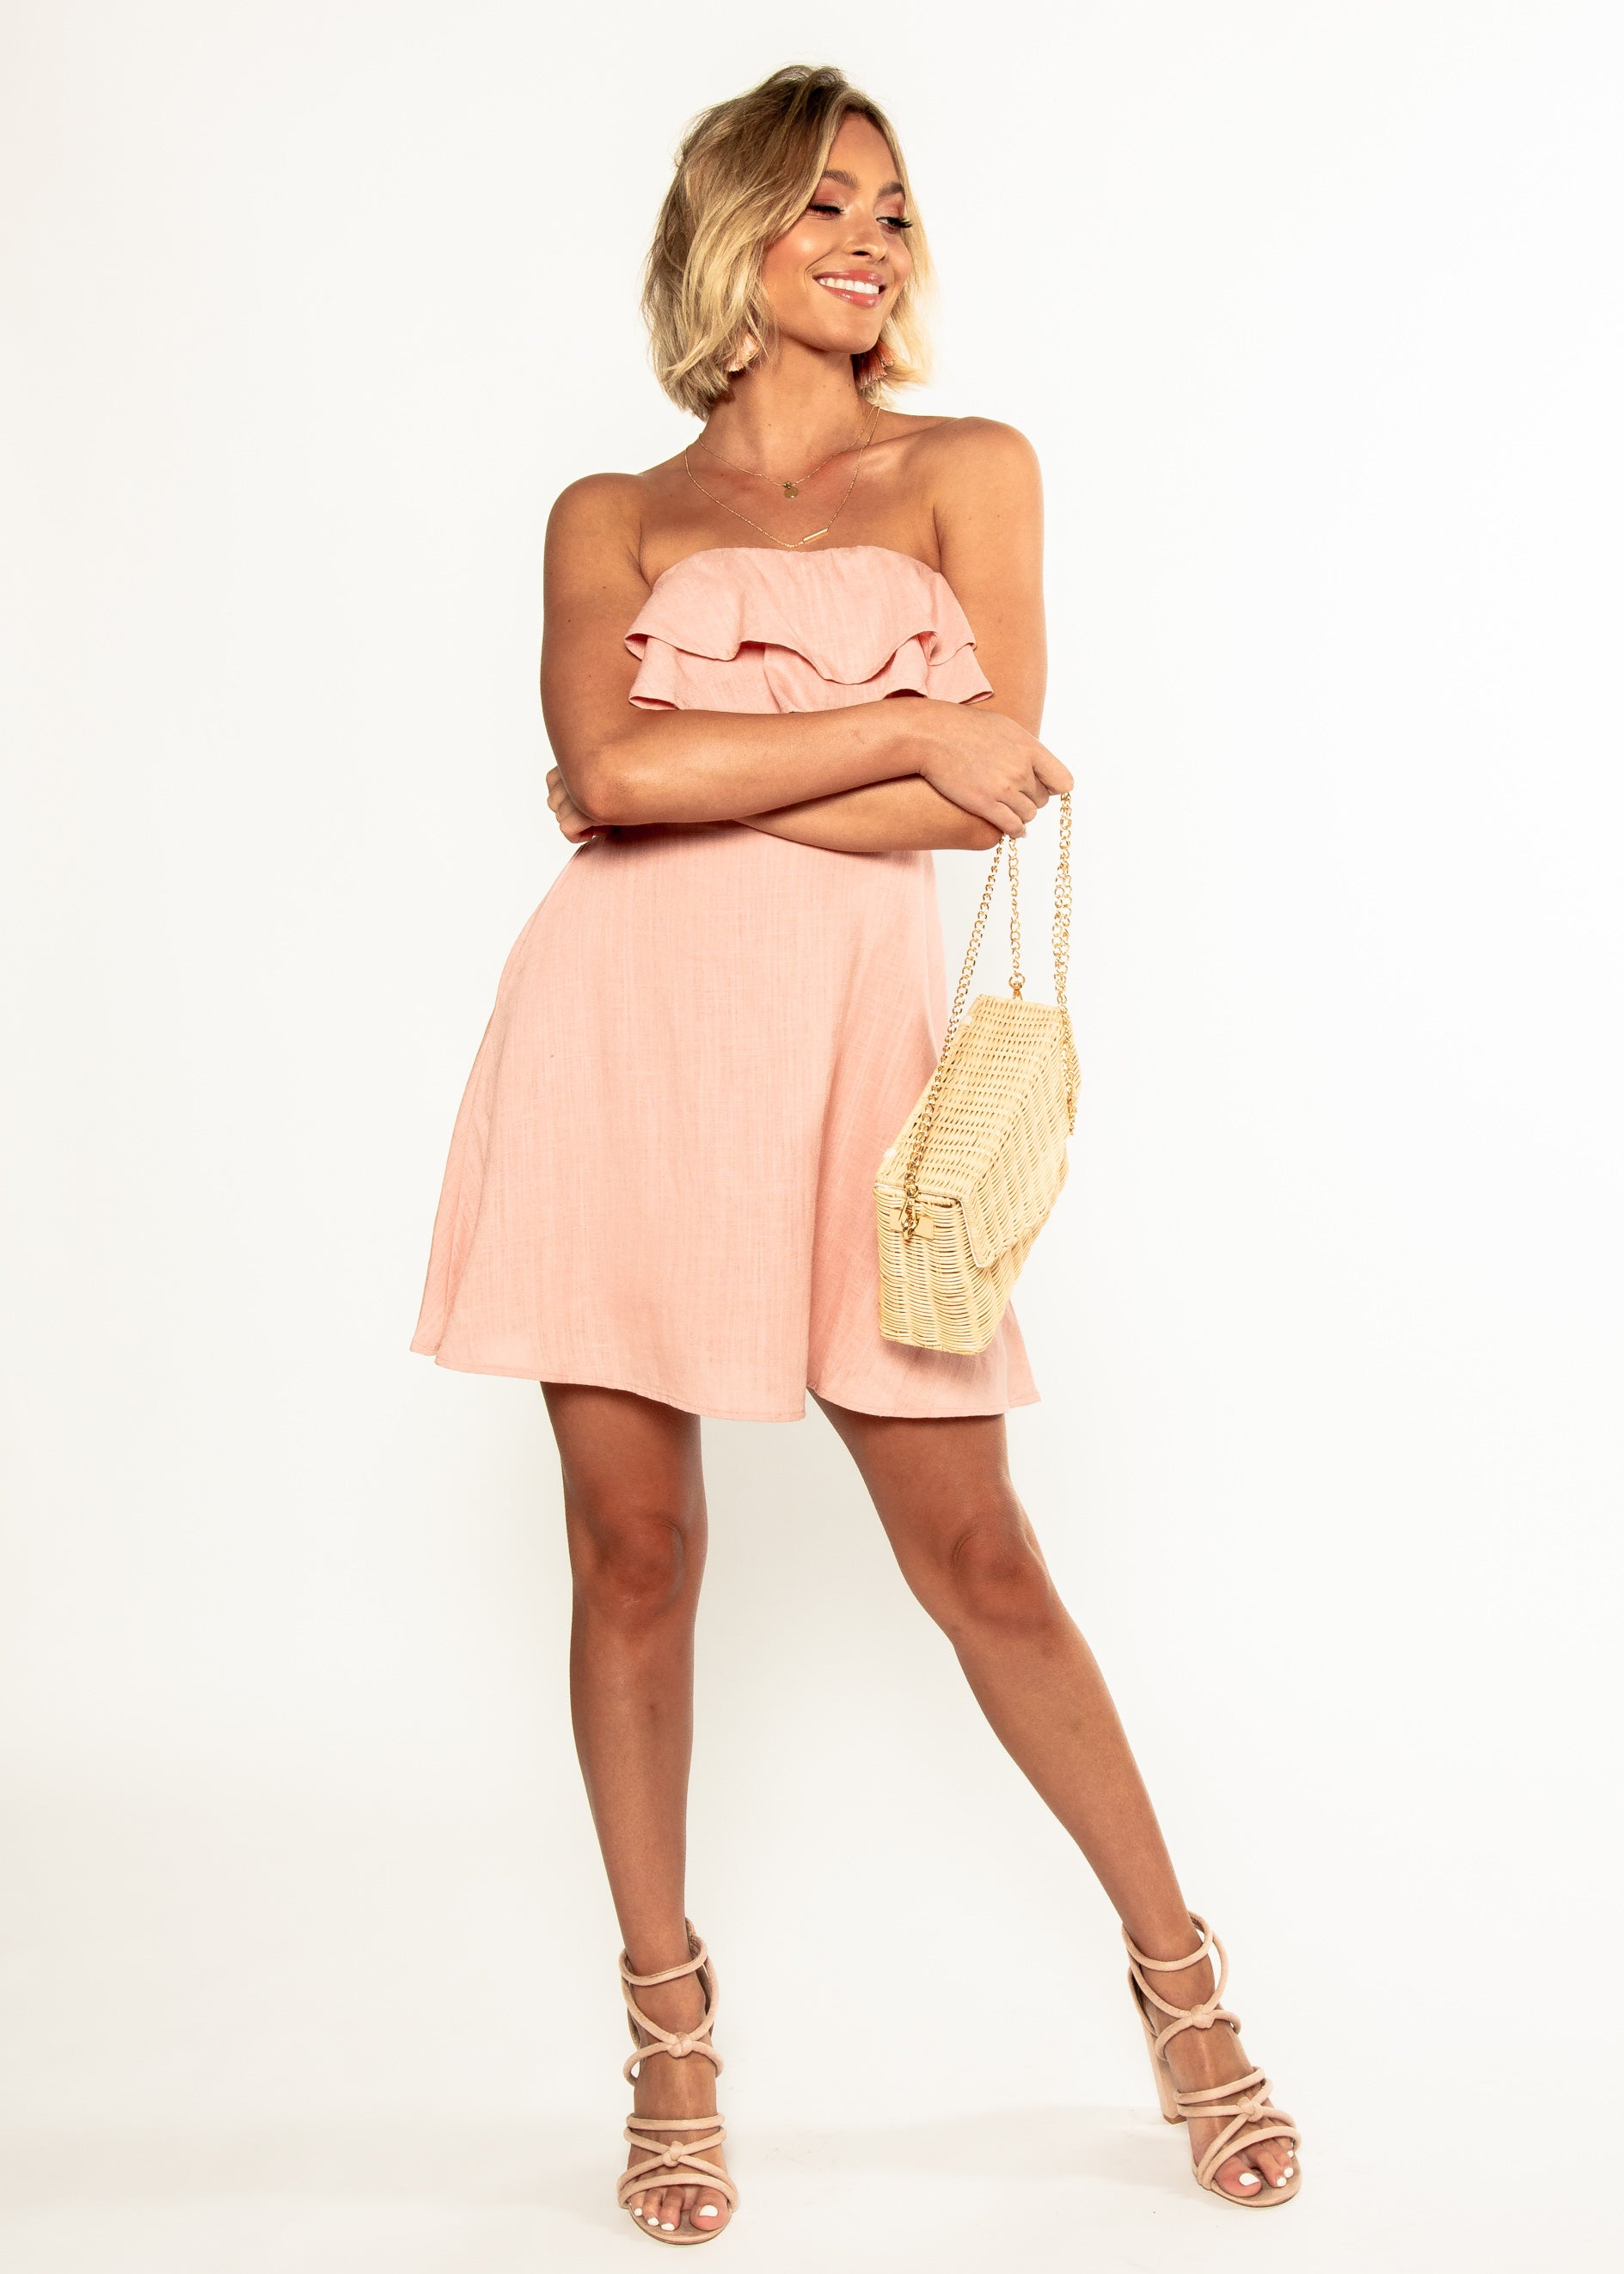 Nevaeh Linen Strapless Dress - Blush